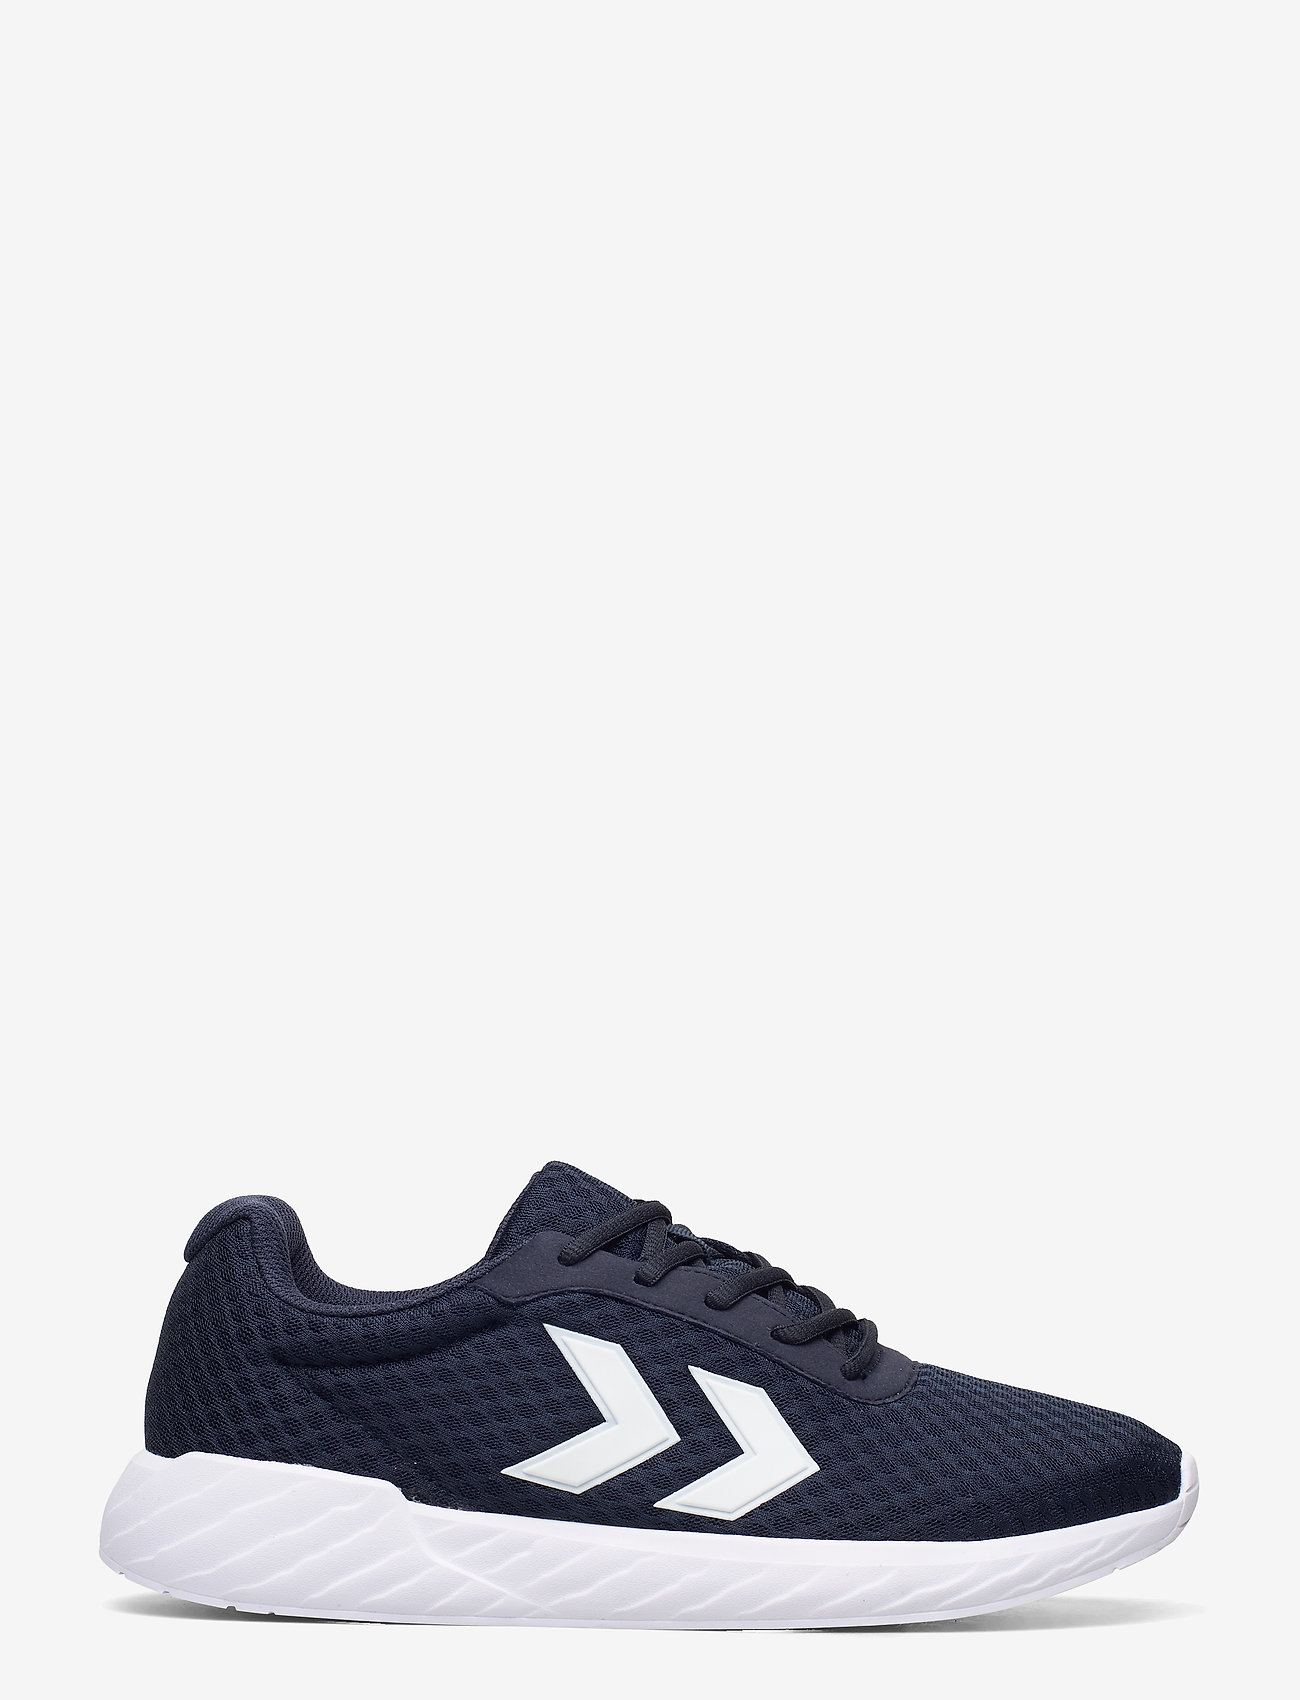 Legend Breather (Navy) (29.96 €) - Hummel oFmIO